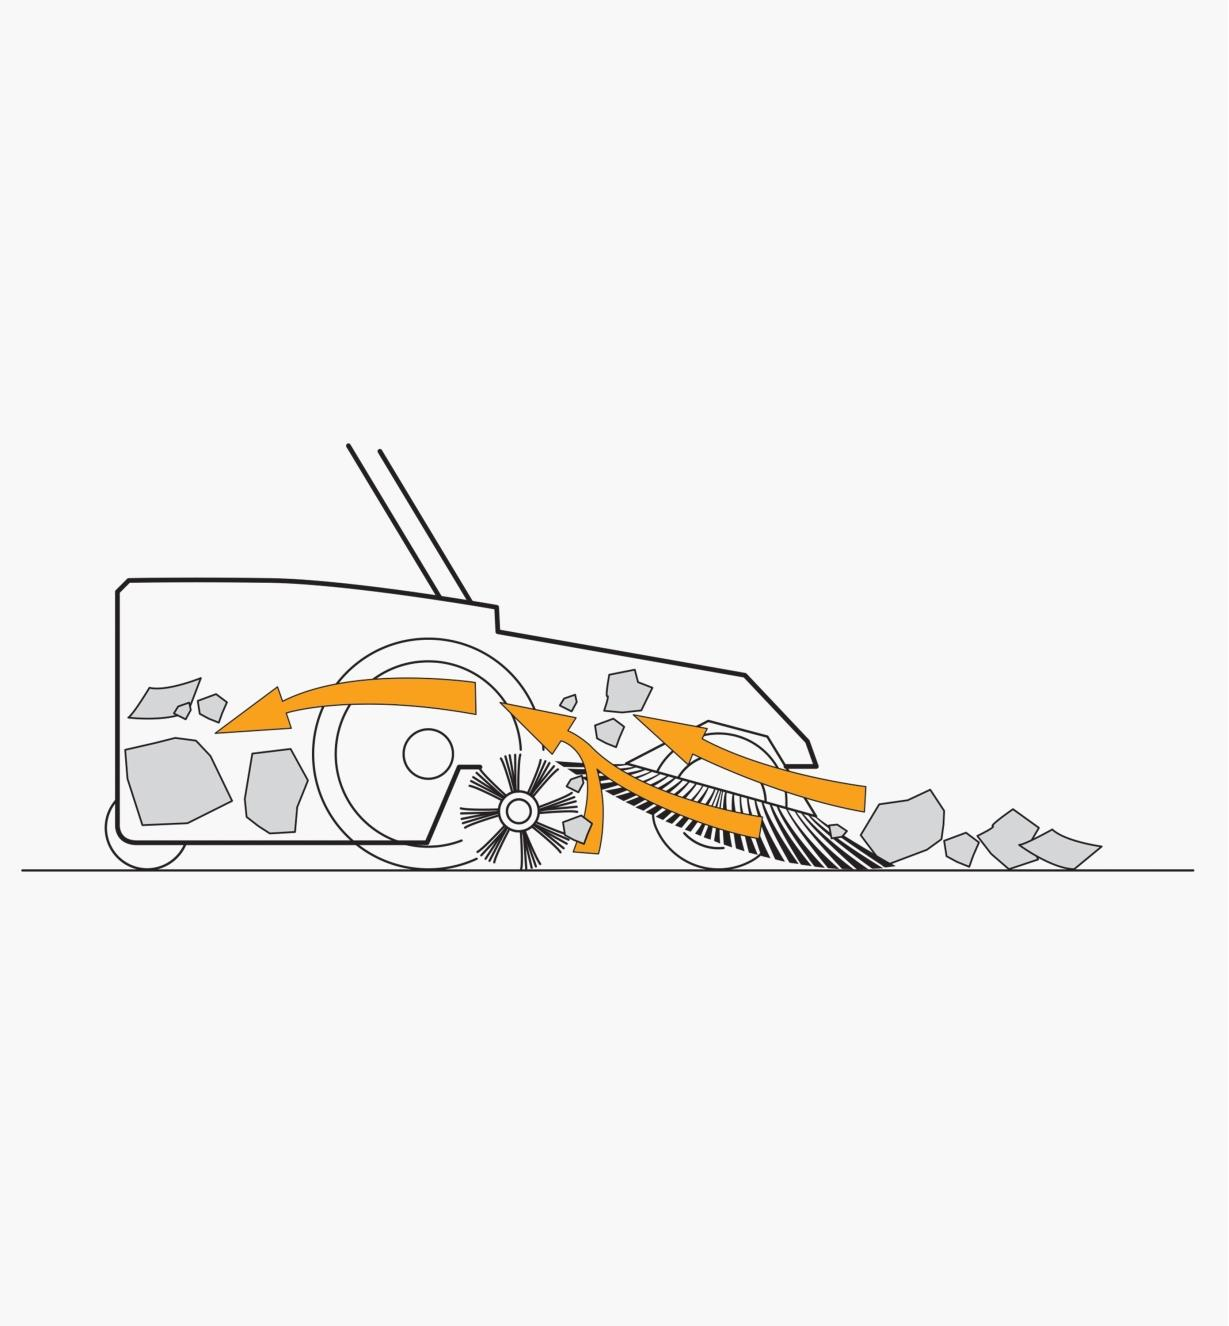 Illustration of sweeper sweeping up debris that is deposited in the container at the back